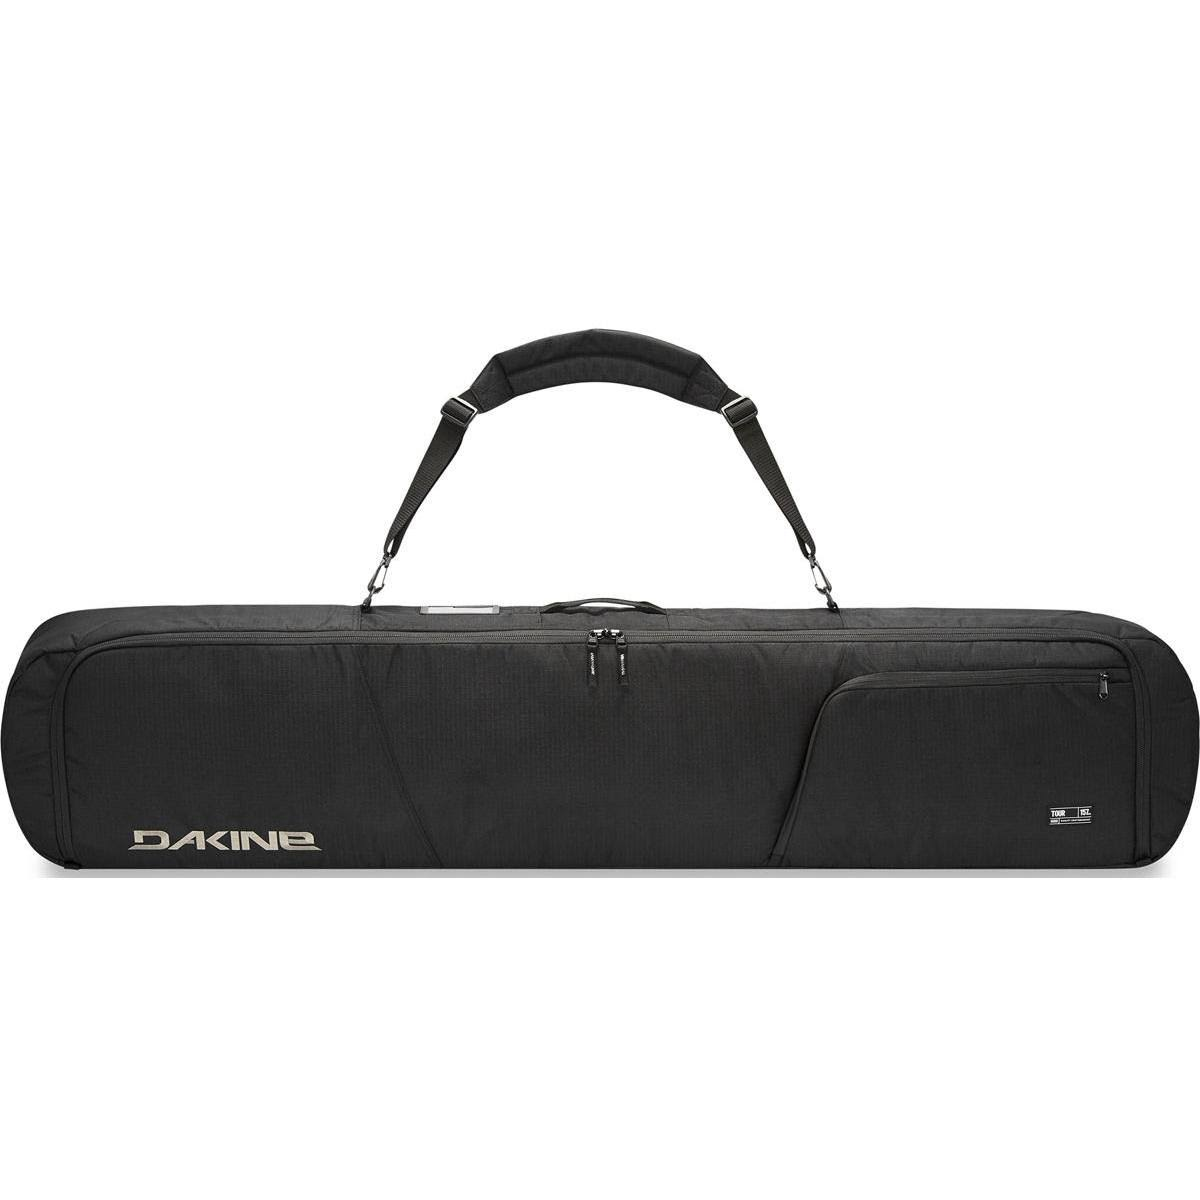 Dakine Tour Snowboard Bag - Black, 165cm